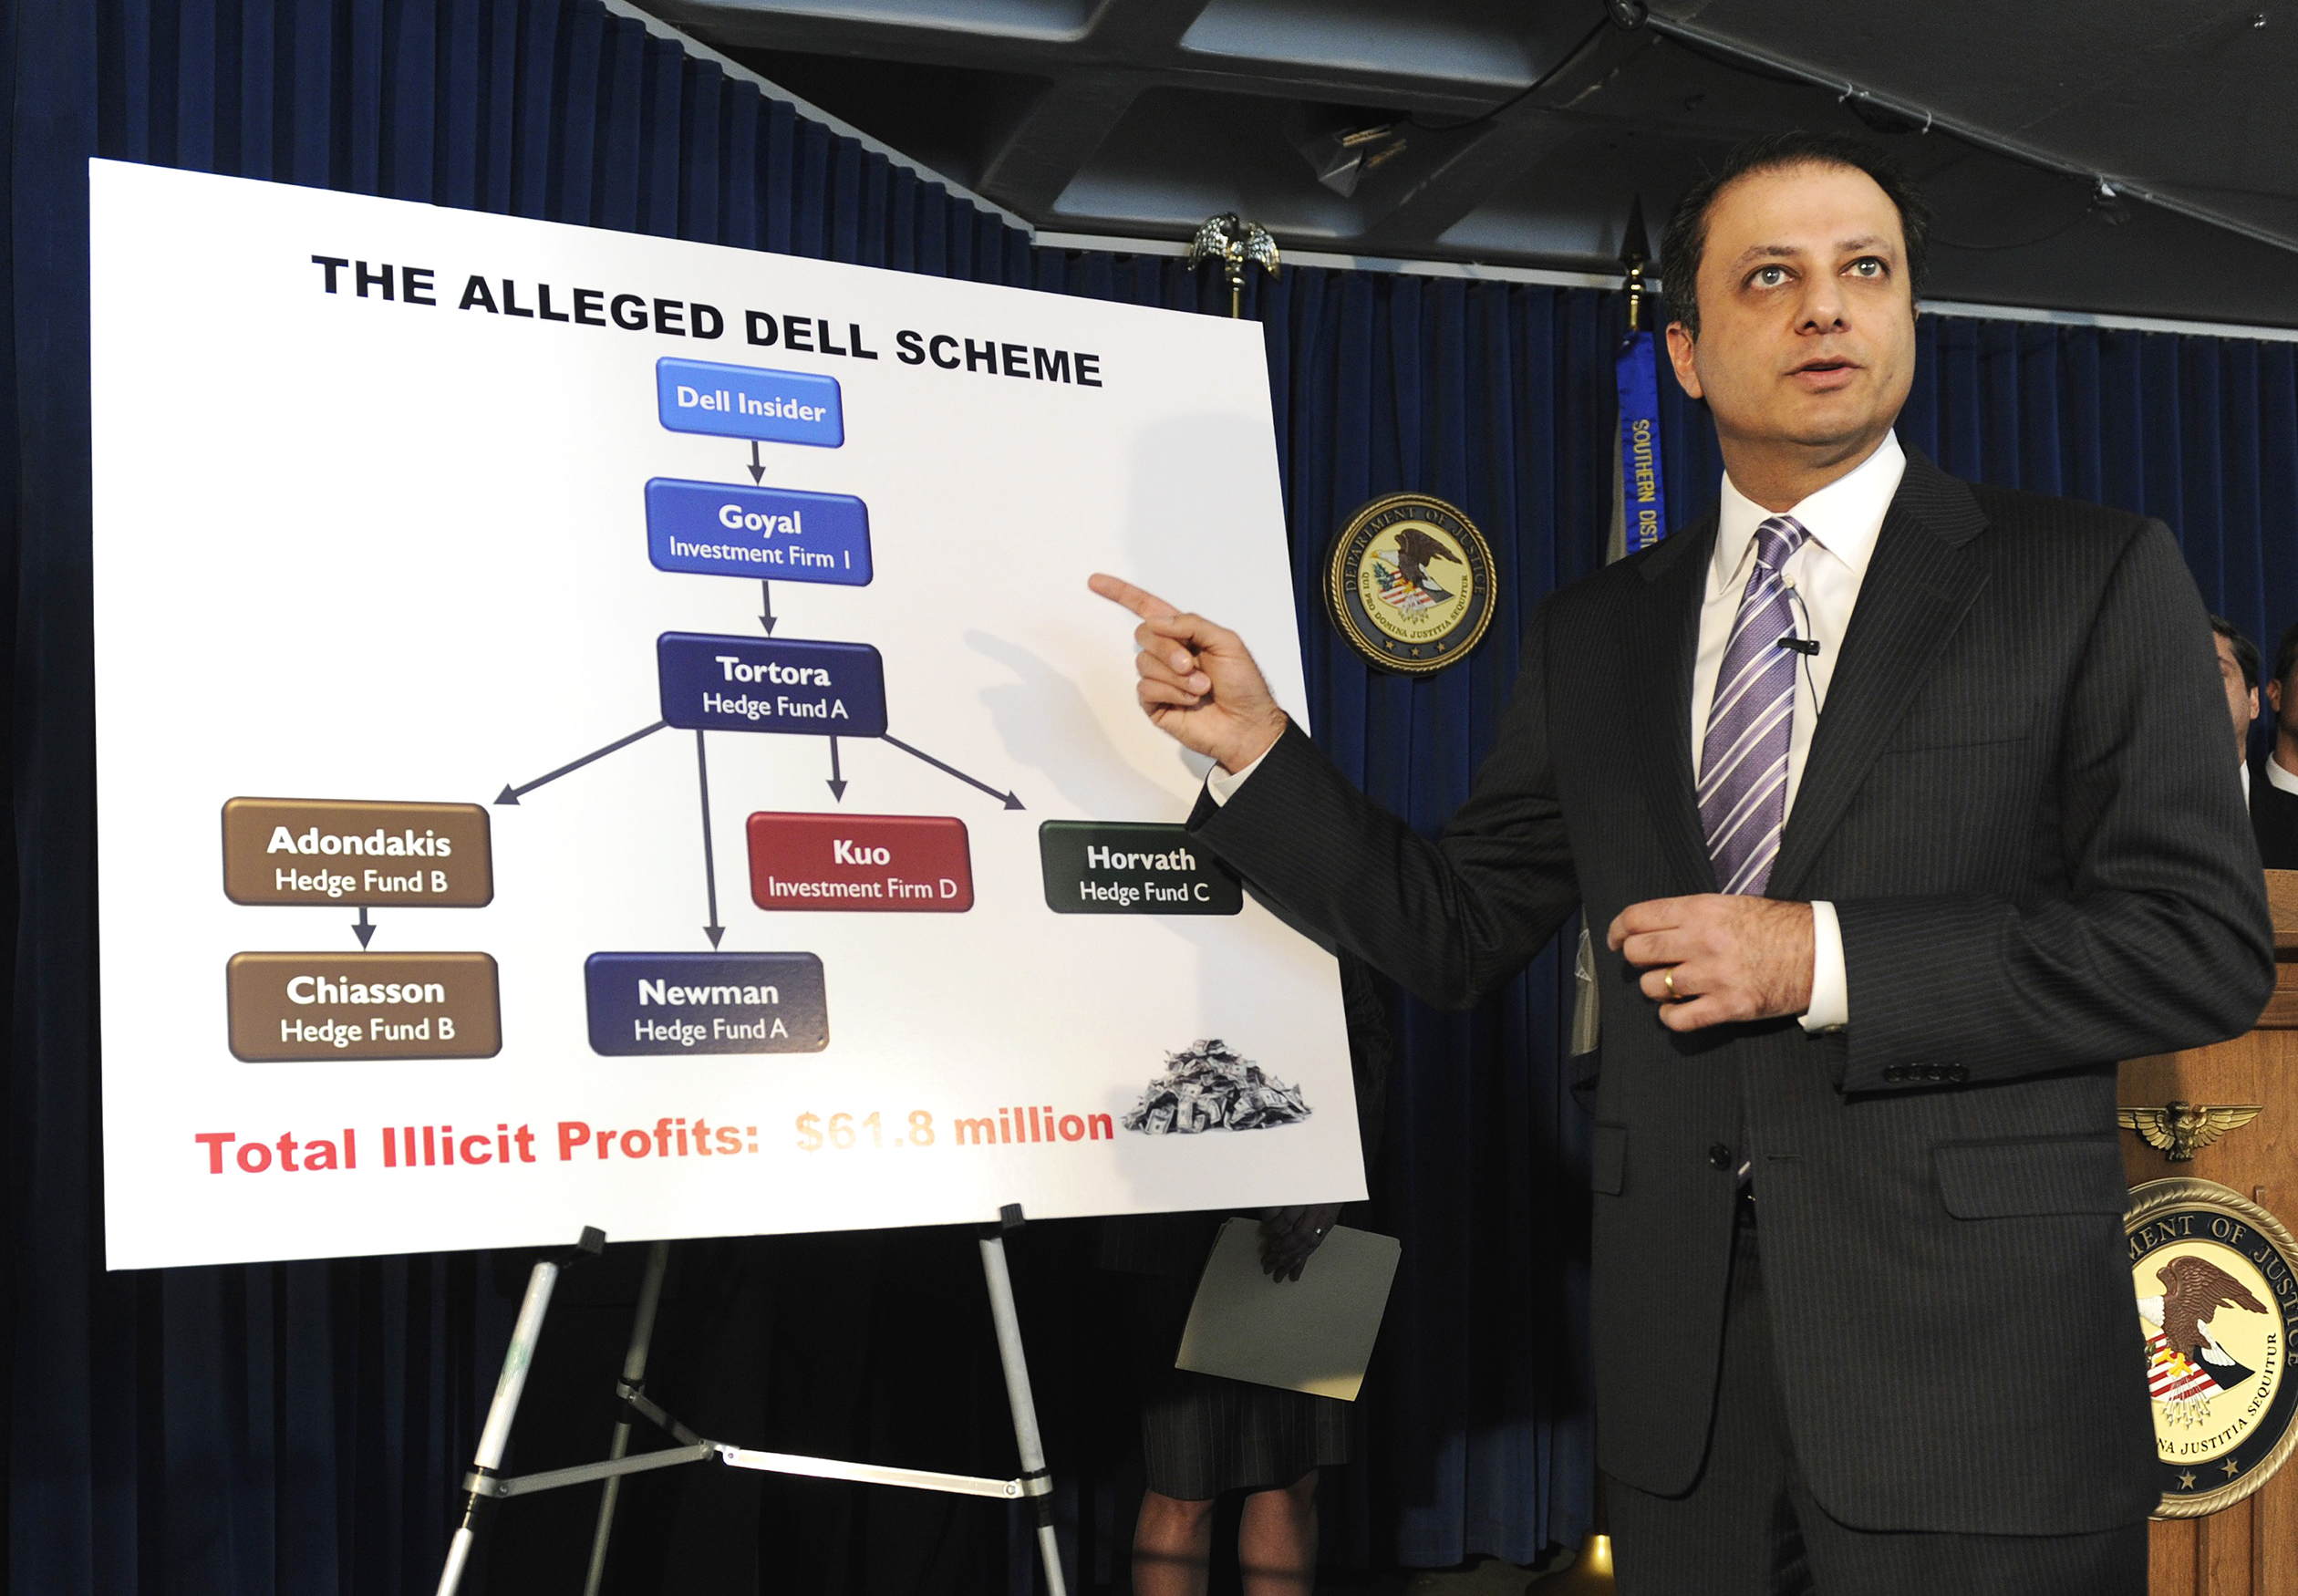 Preet Bharara, US Attorney for the South